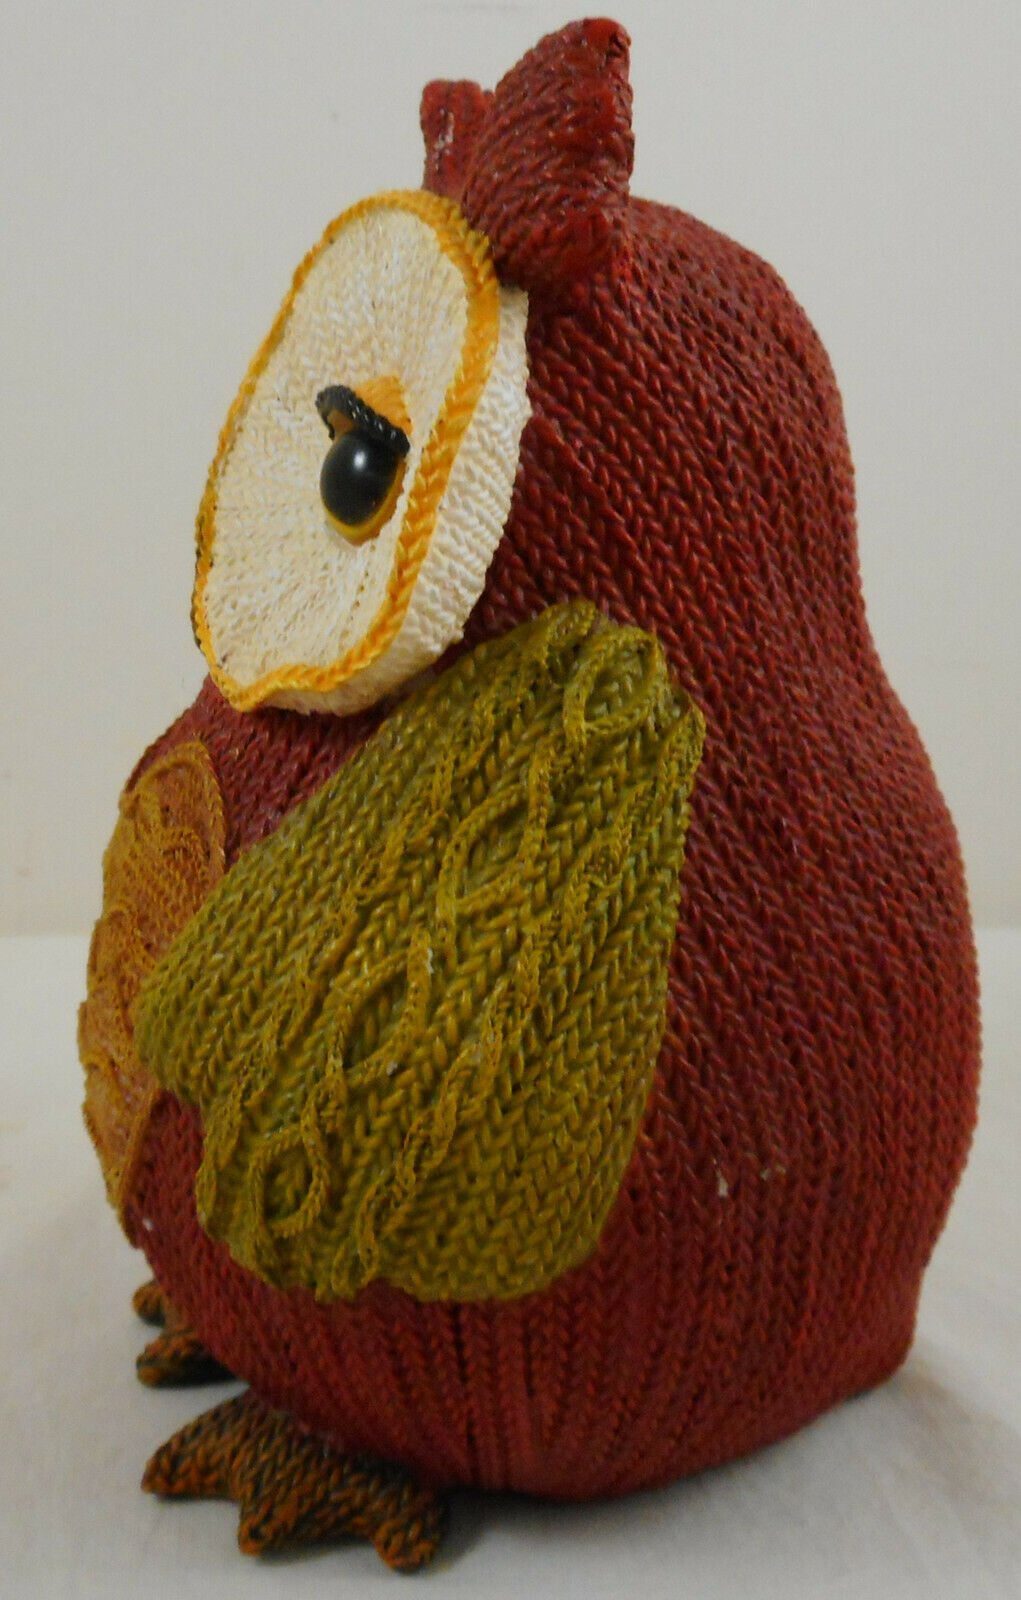 """Multi Color Resin Owl Knitted Look Knit Figurine 6"""" Fall Decoration Heart image 4"""